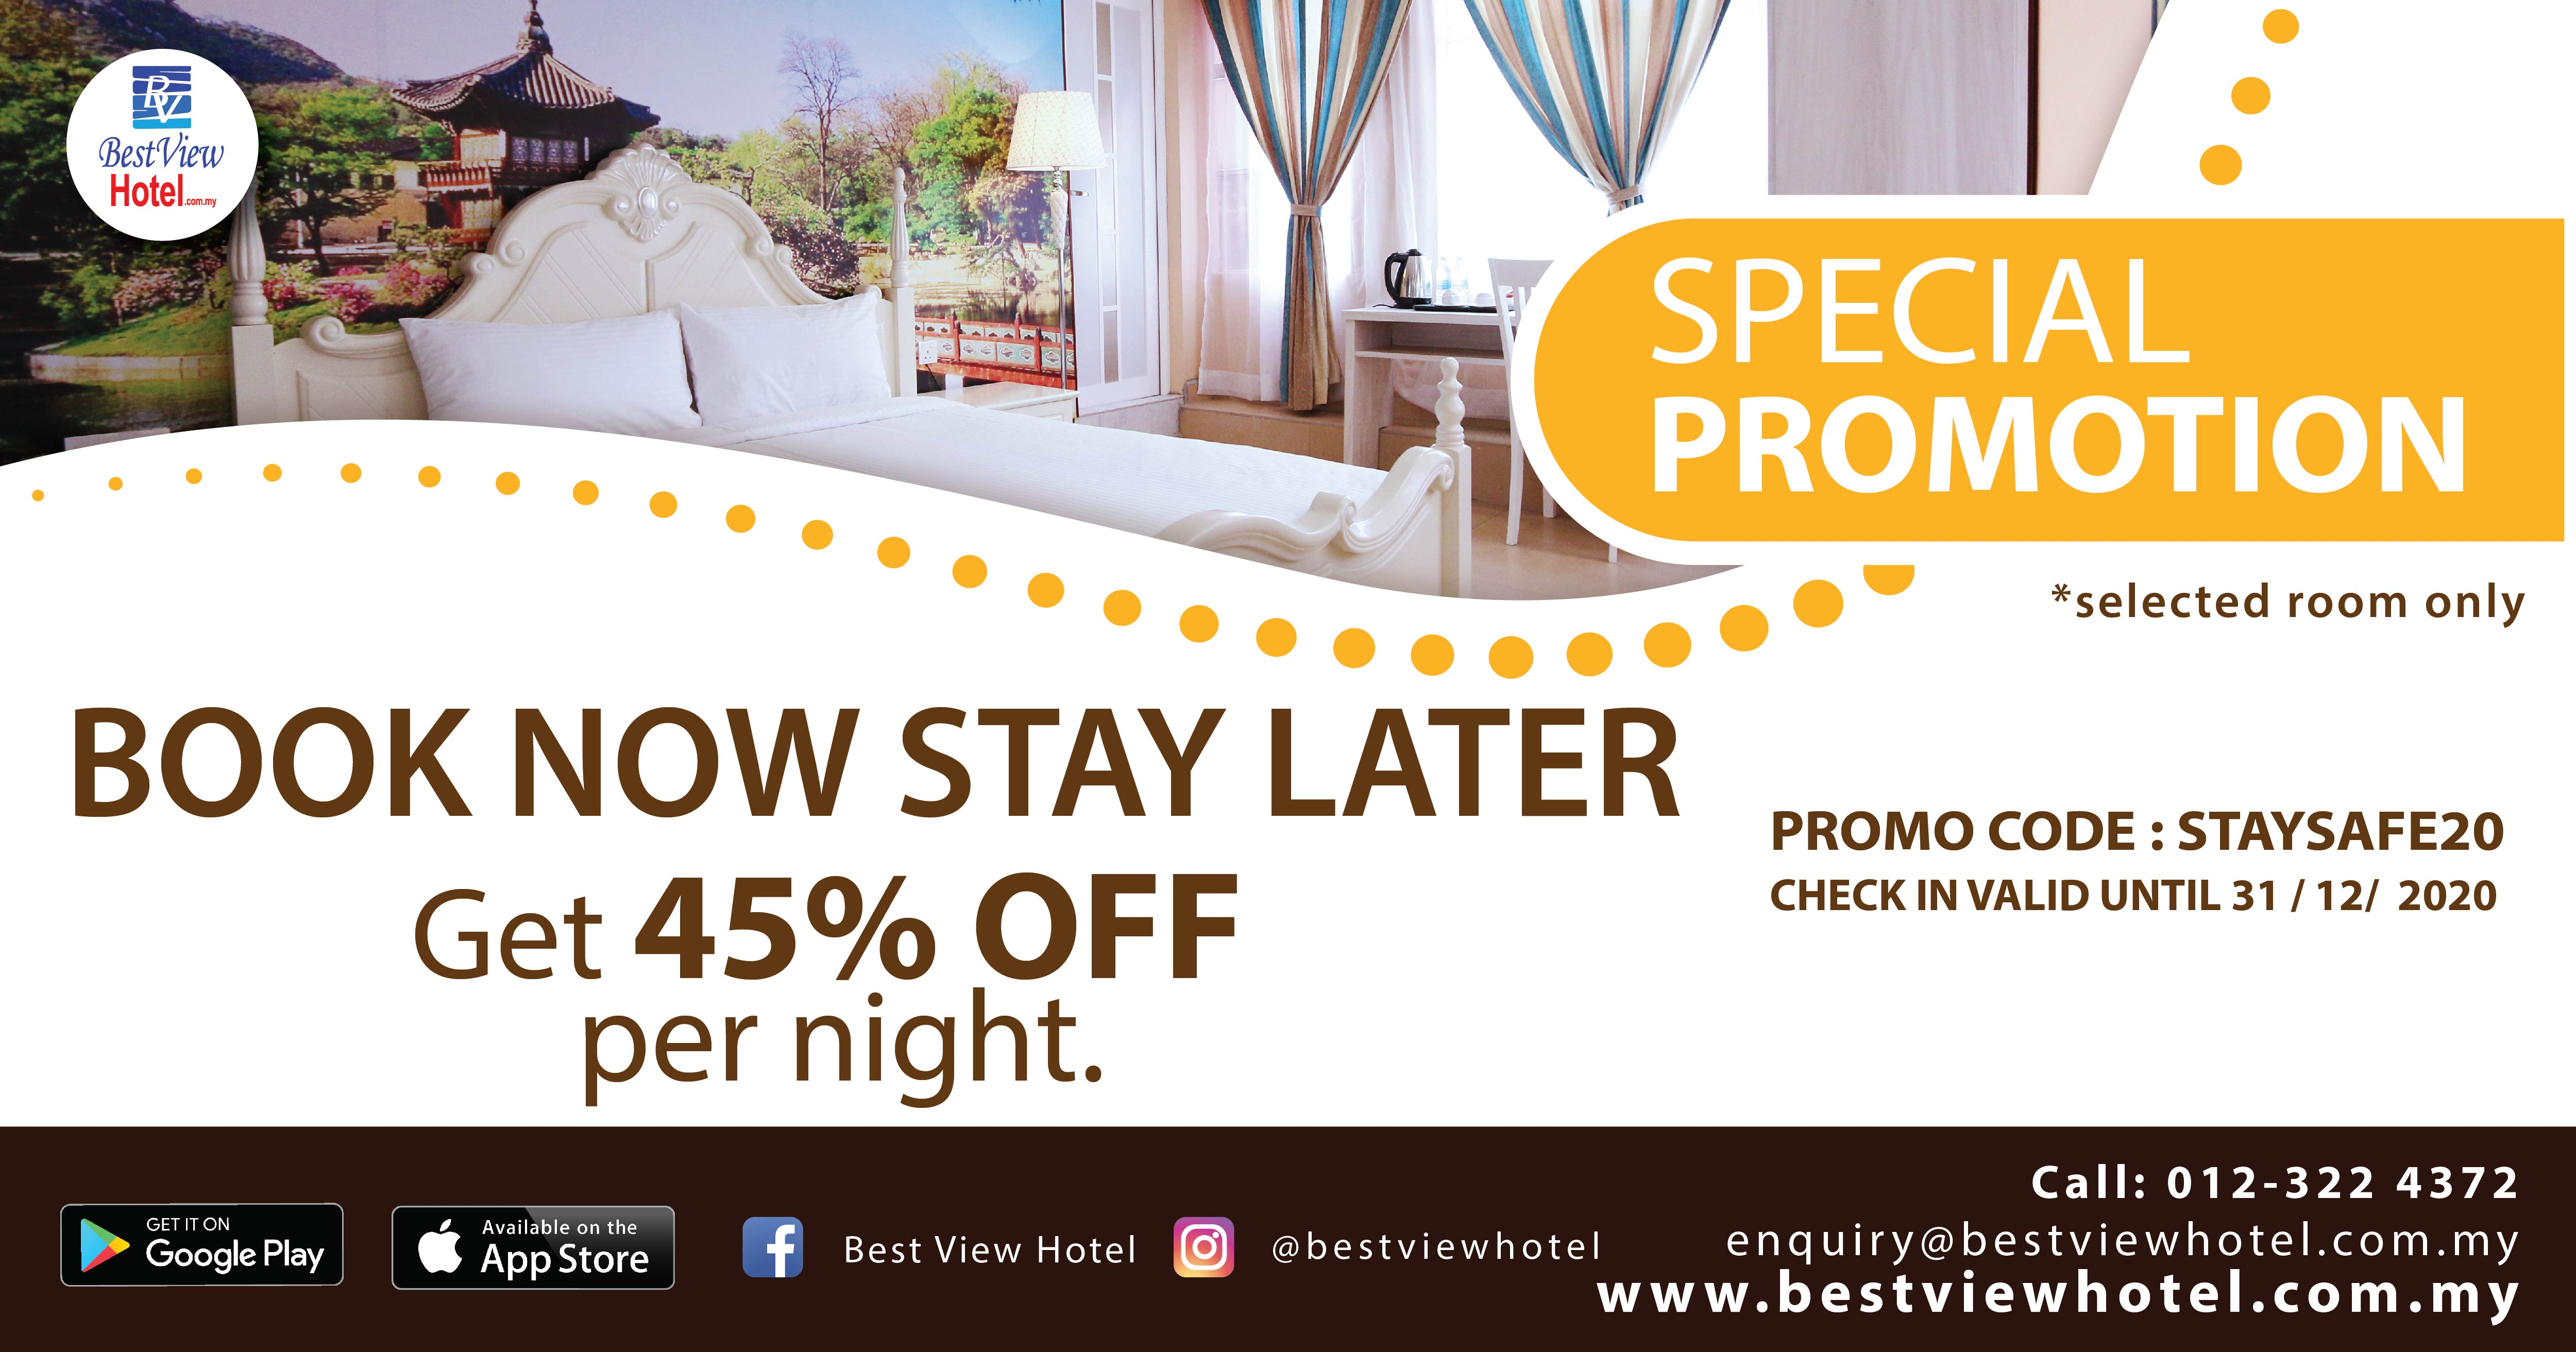 BOOK NOW STAY LATER!